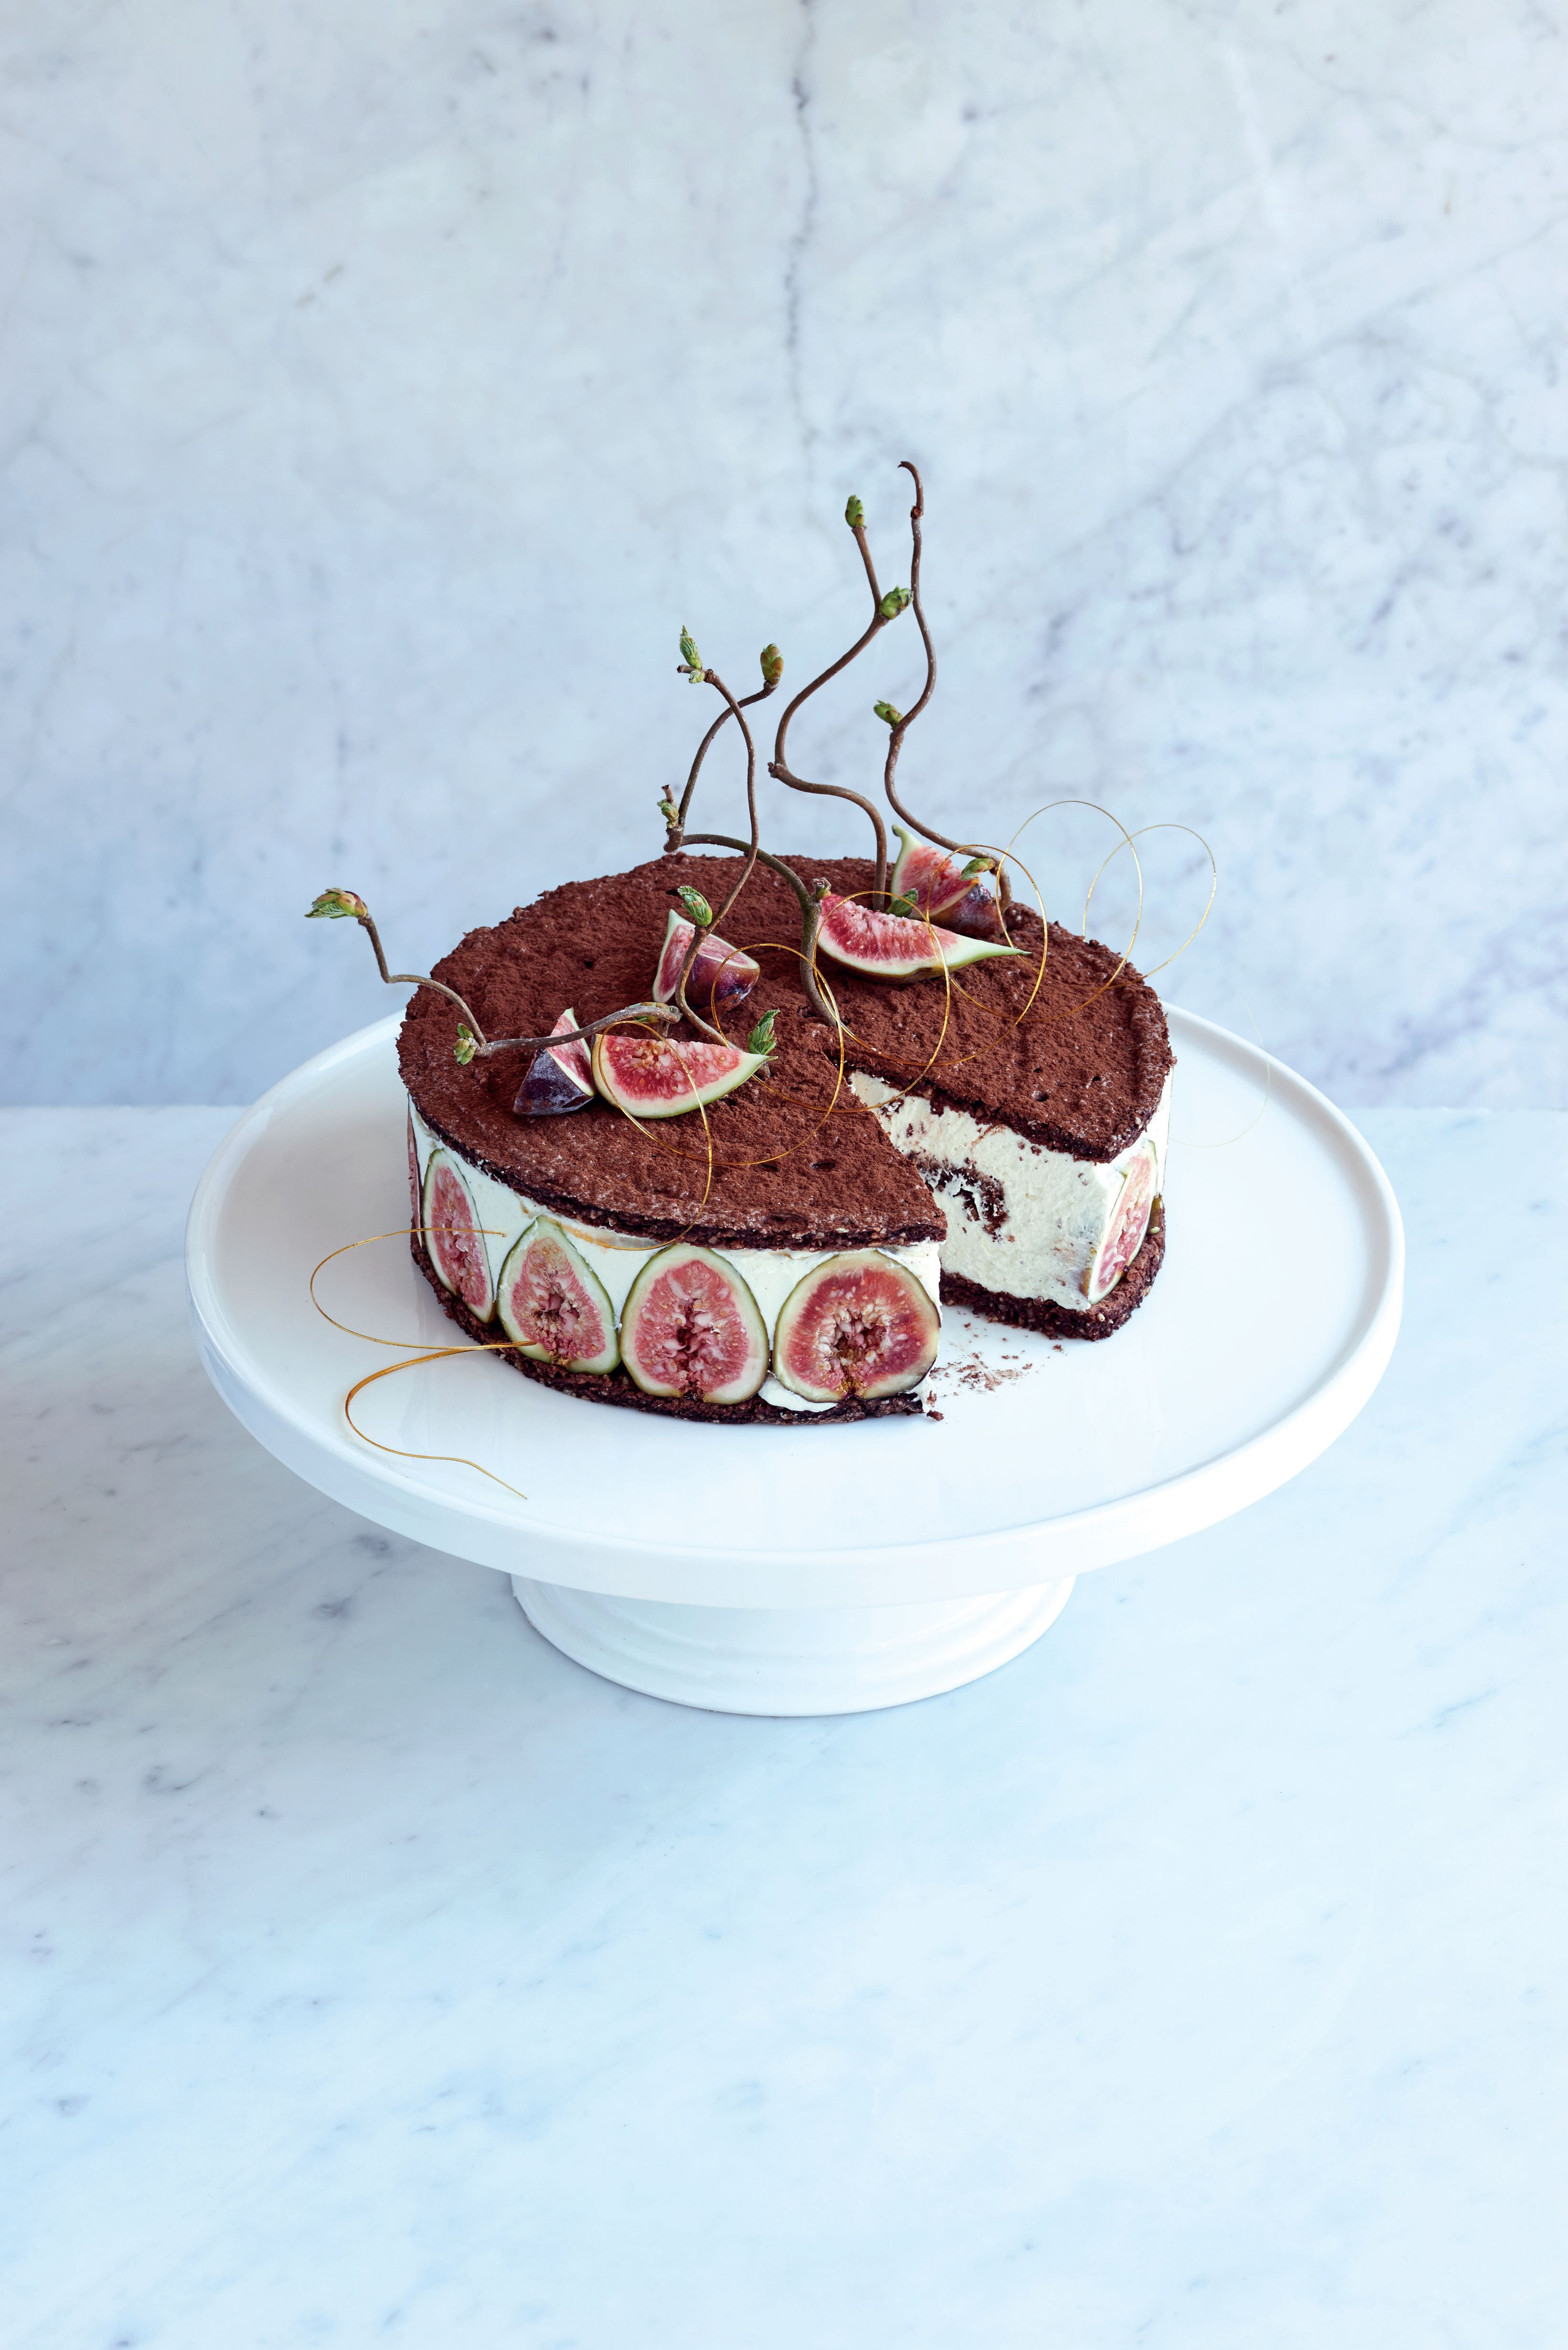 Chocolate hazelnut dacquoise with figs